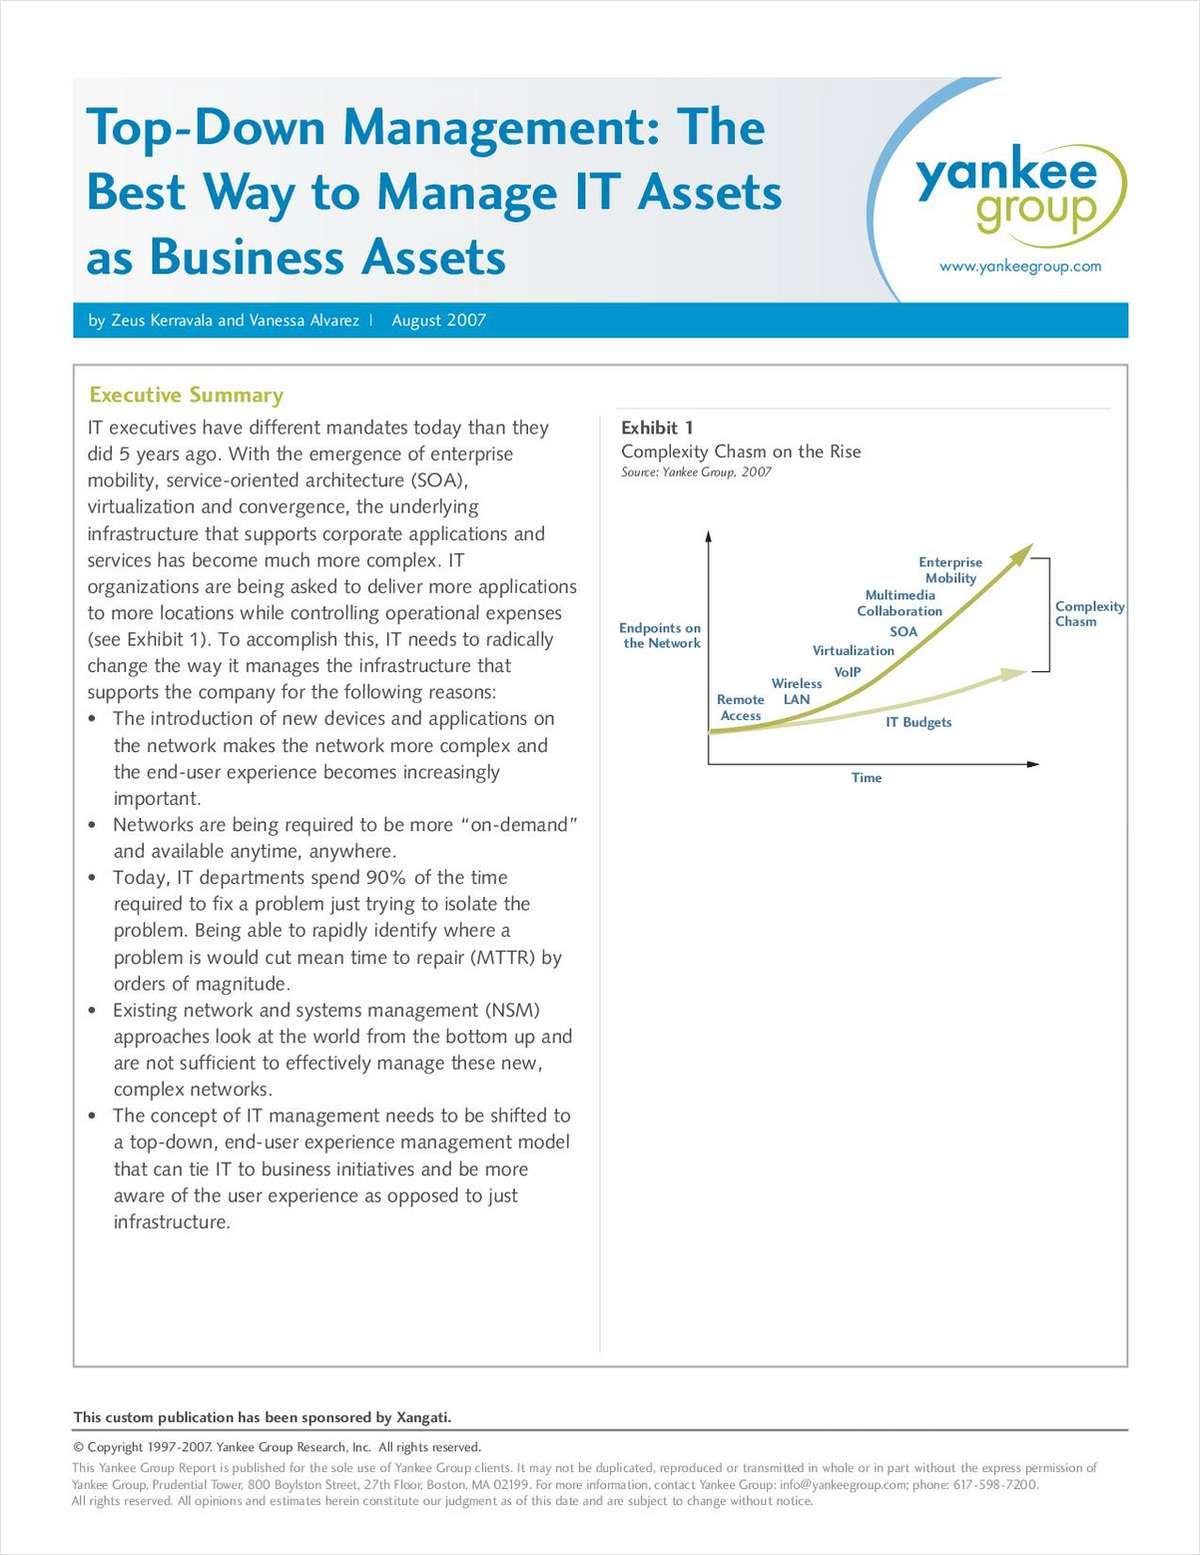 Top-Down Management: The Best Way to Manage IT Assets and Business Assets